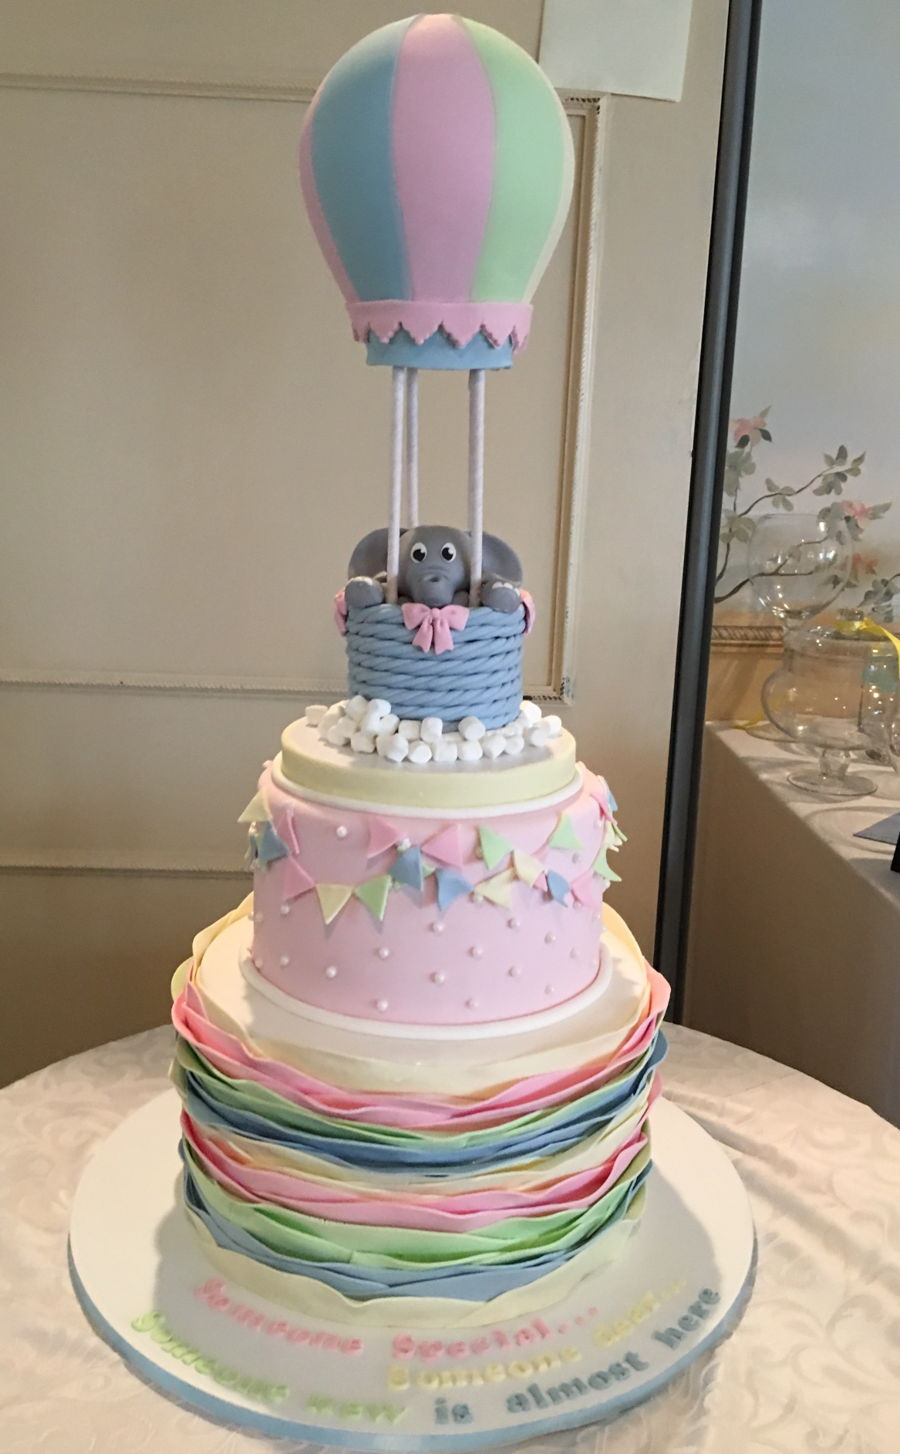 Exceptional Hot Air Balloon Baby Shower Cake Part - 3: Hot Air Balloon Baby Shower Cake On Cake Central